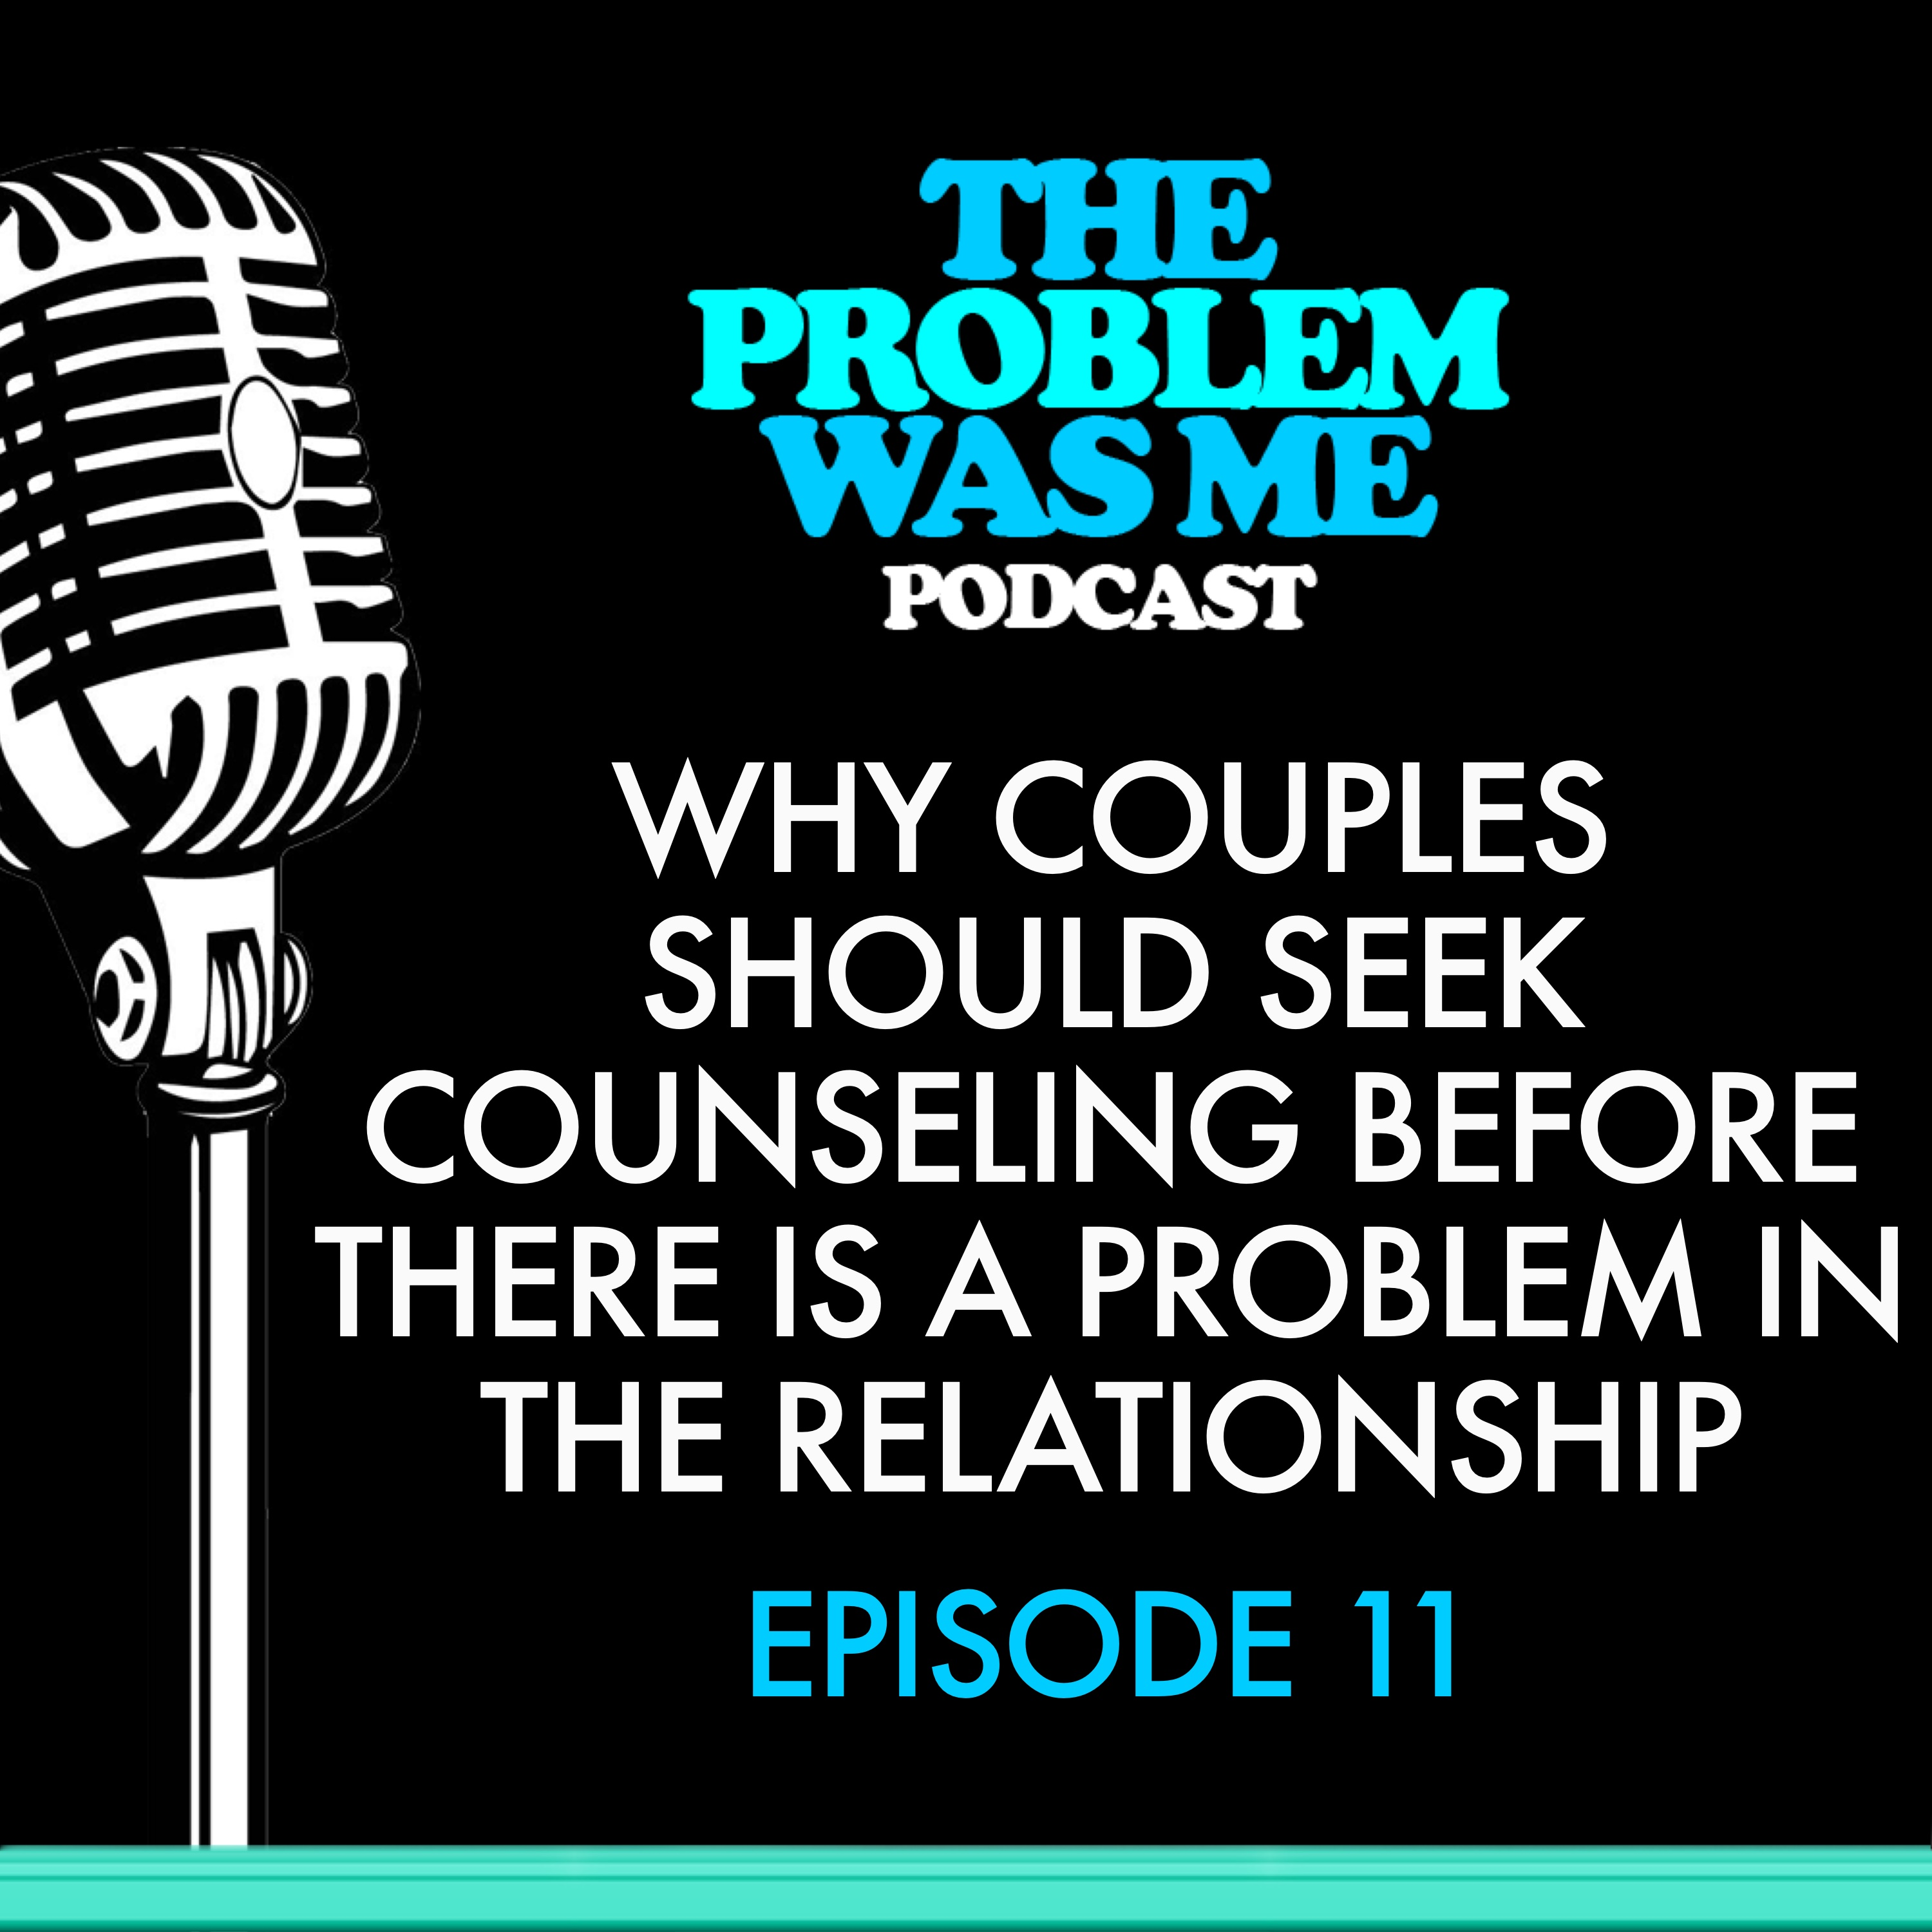 Why couples should seek counseling before there is a problem in the relationship